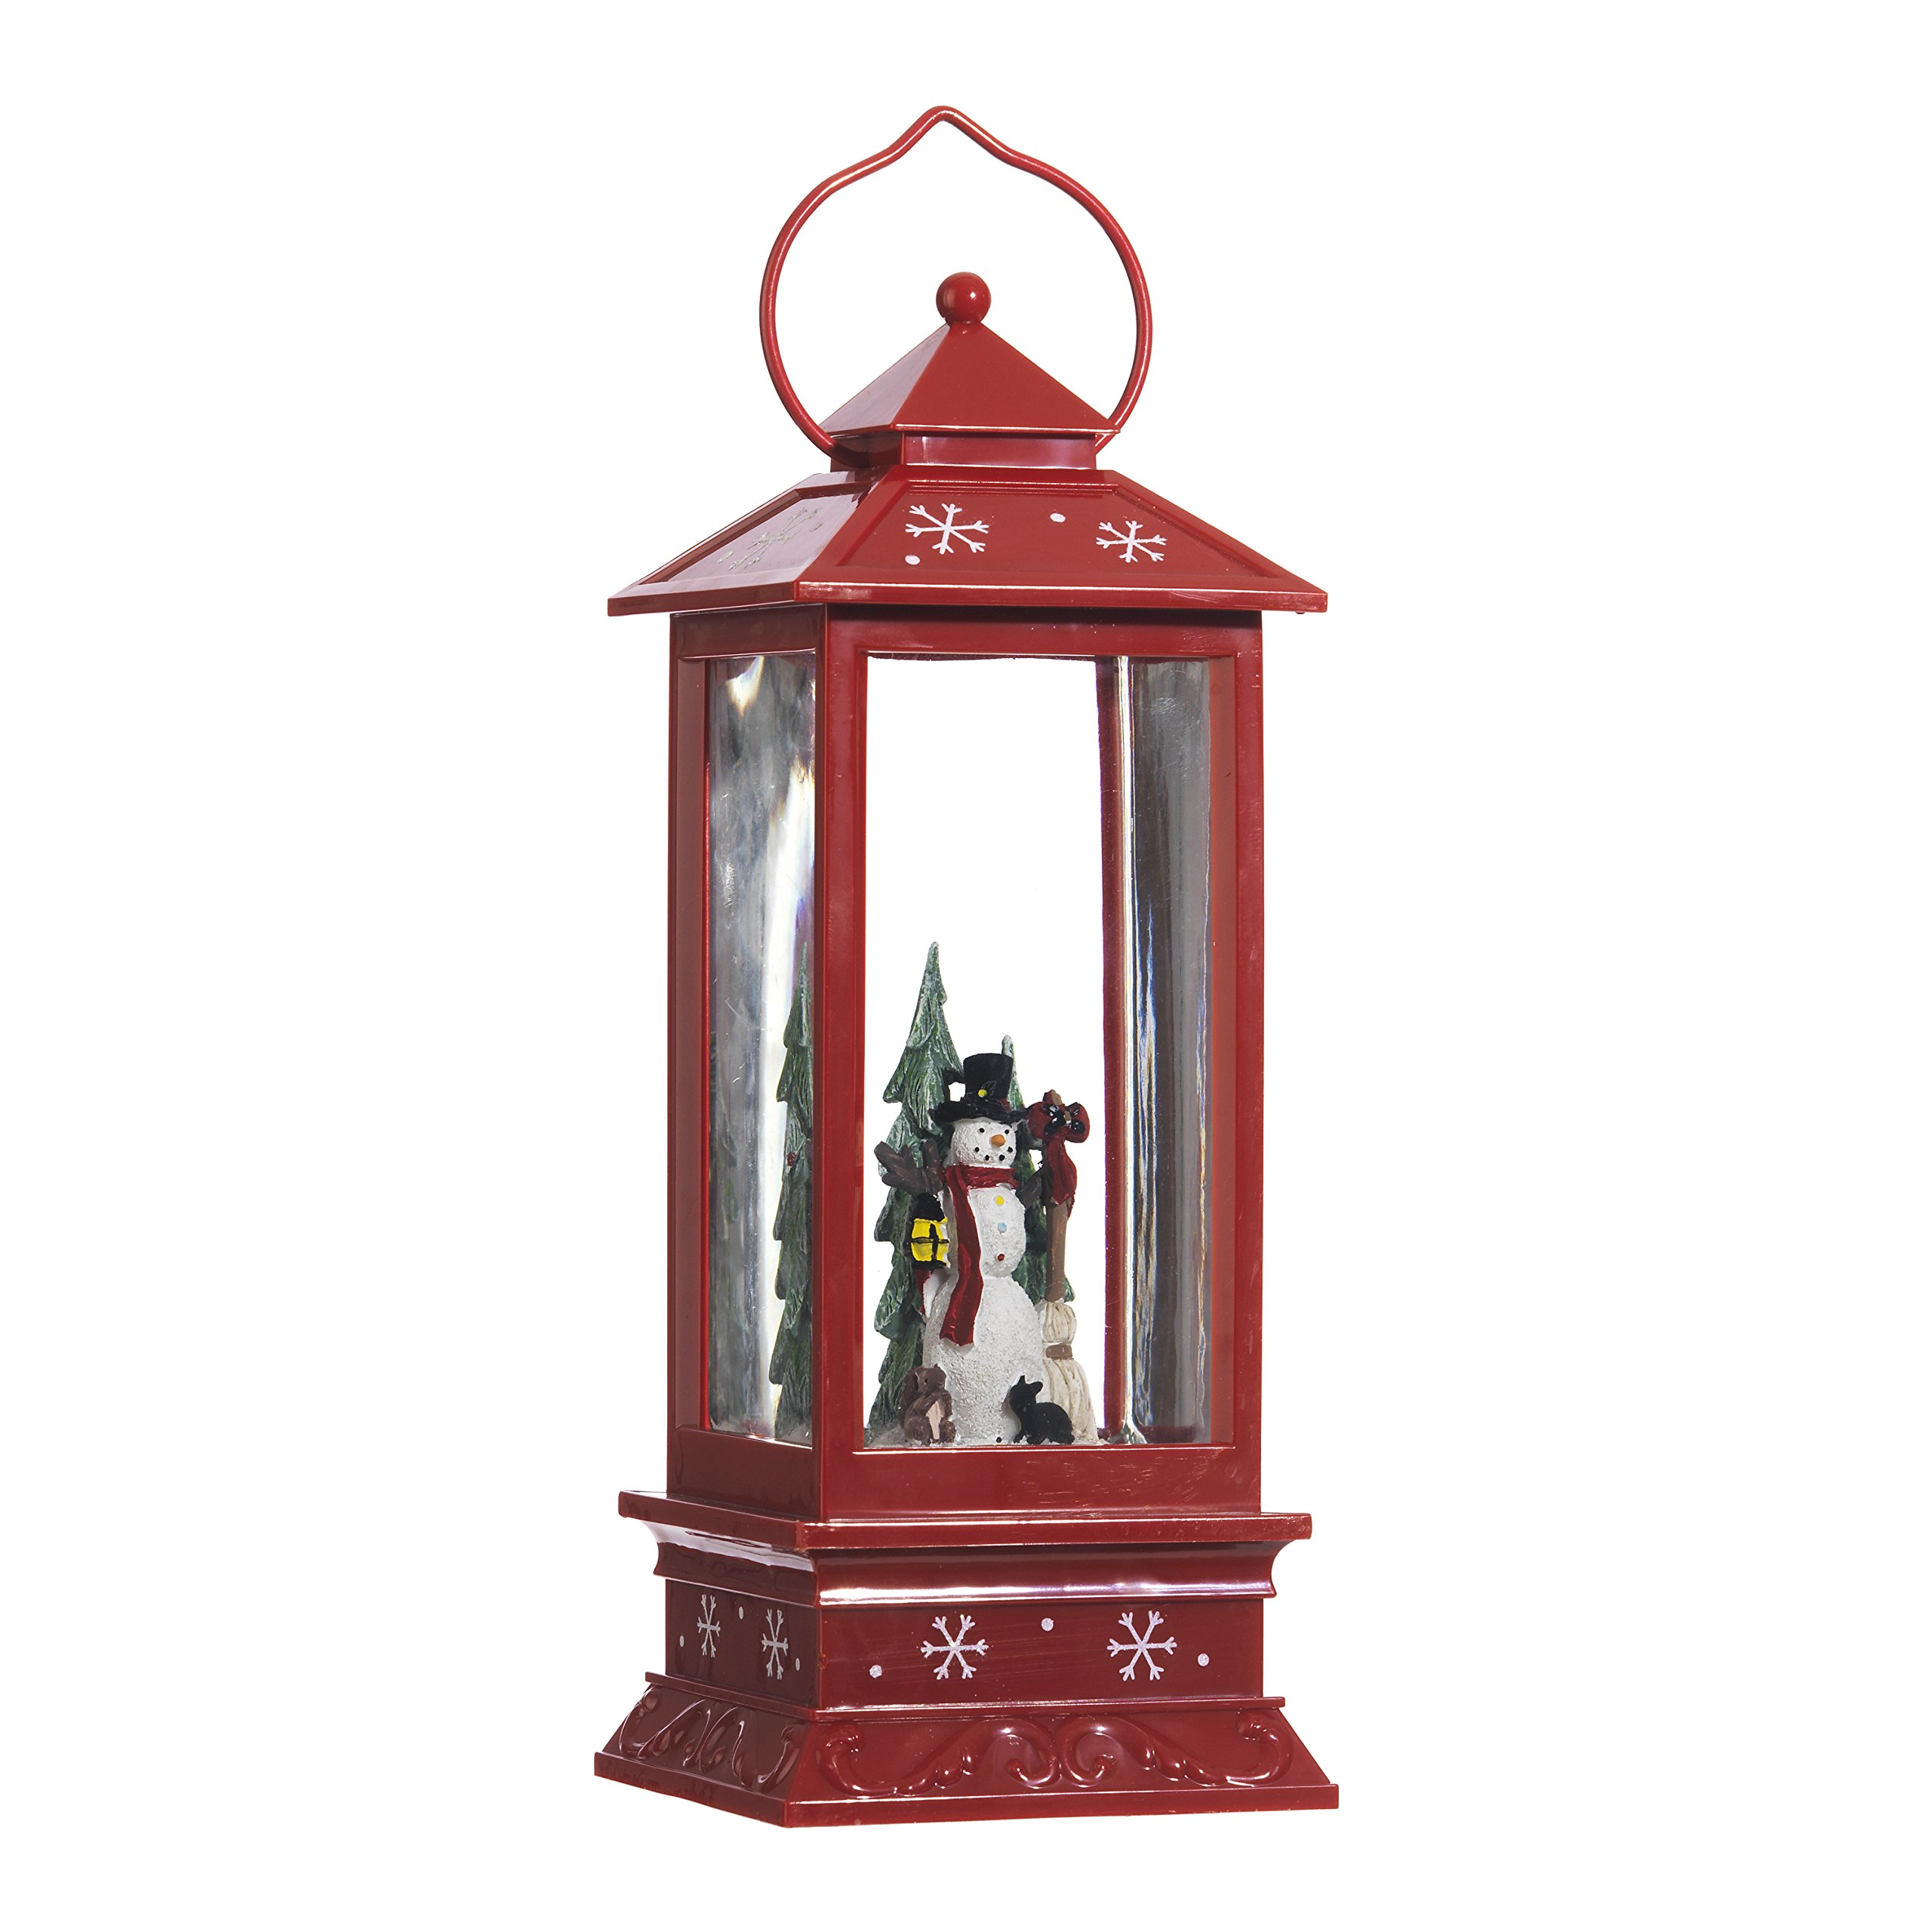 Lighted Snow Globe Lantern: 11 Inch, Red Holiday Water Lantern by RAZ Imports (Snowman)